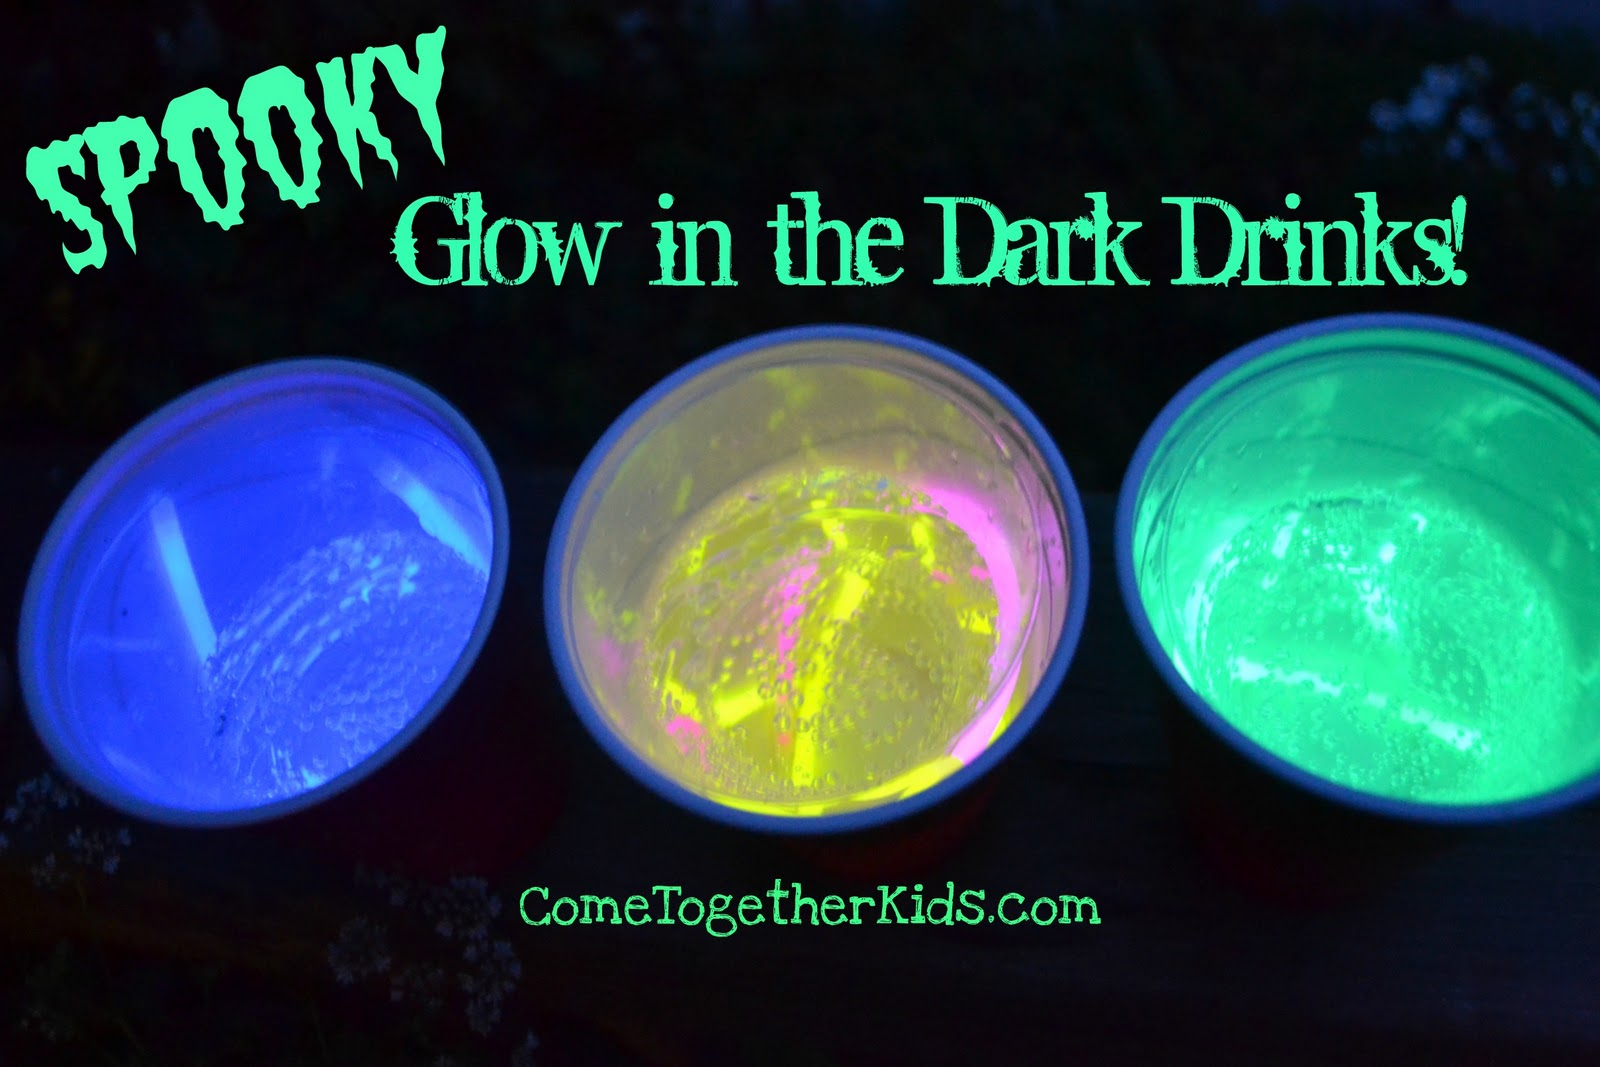 Come Together Kids: Spooky Glow-in-the-Dark Drinks